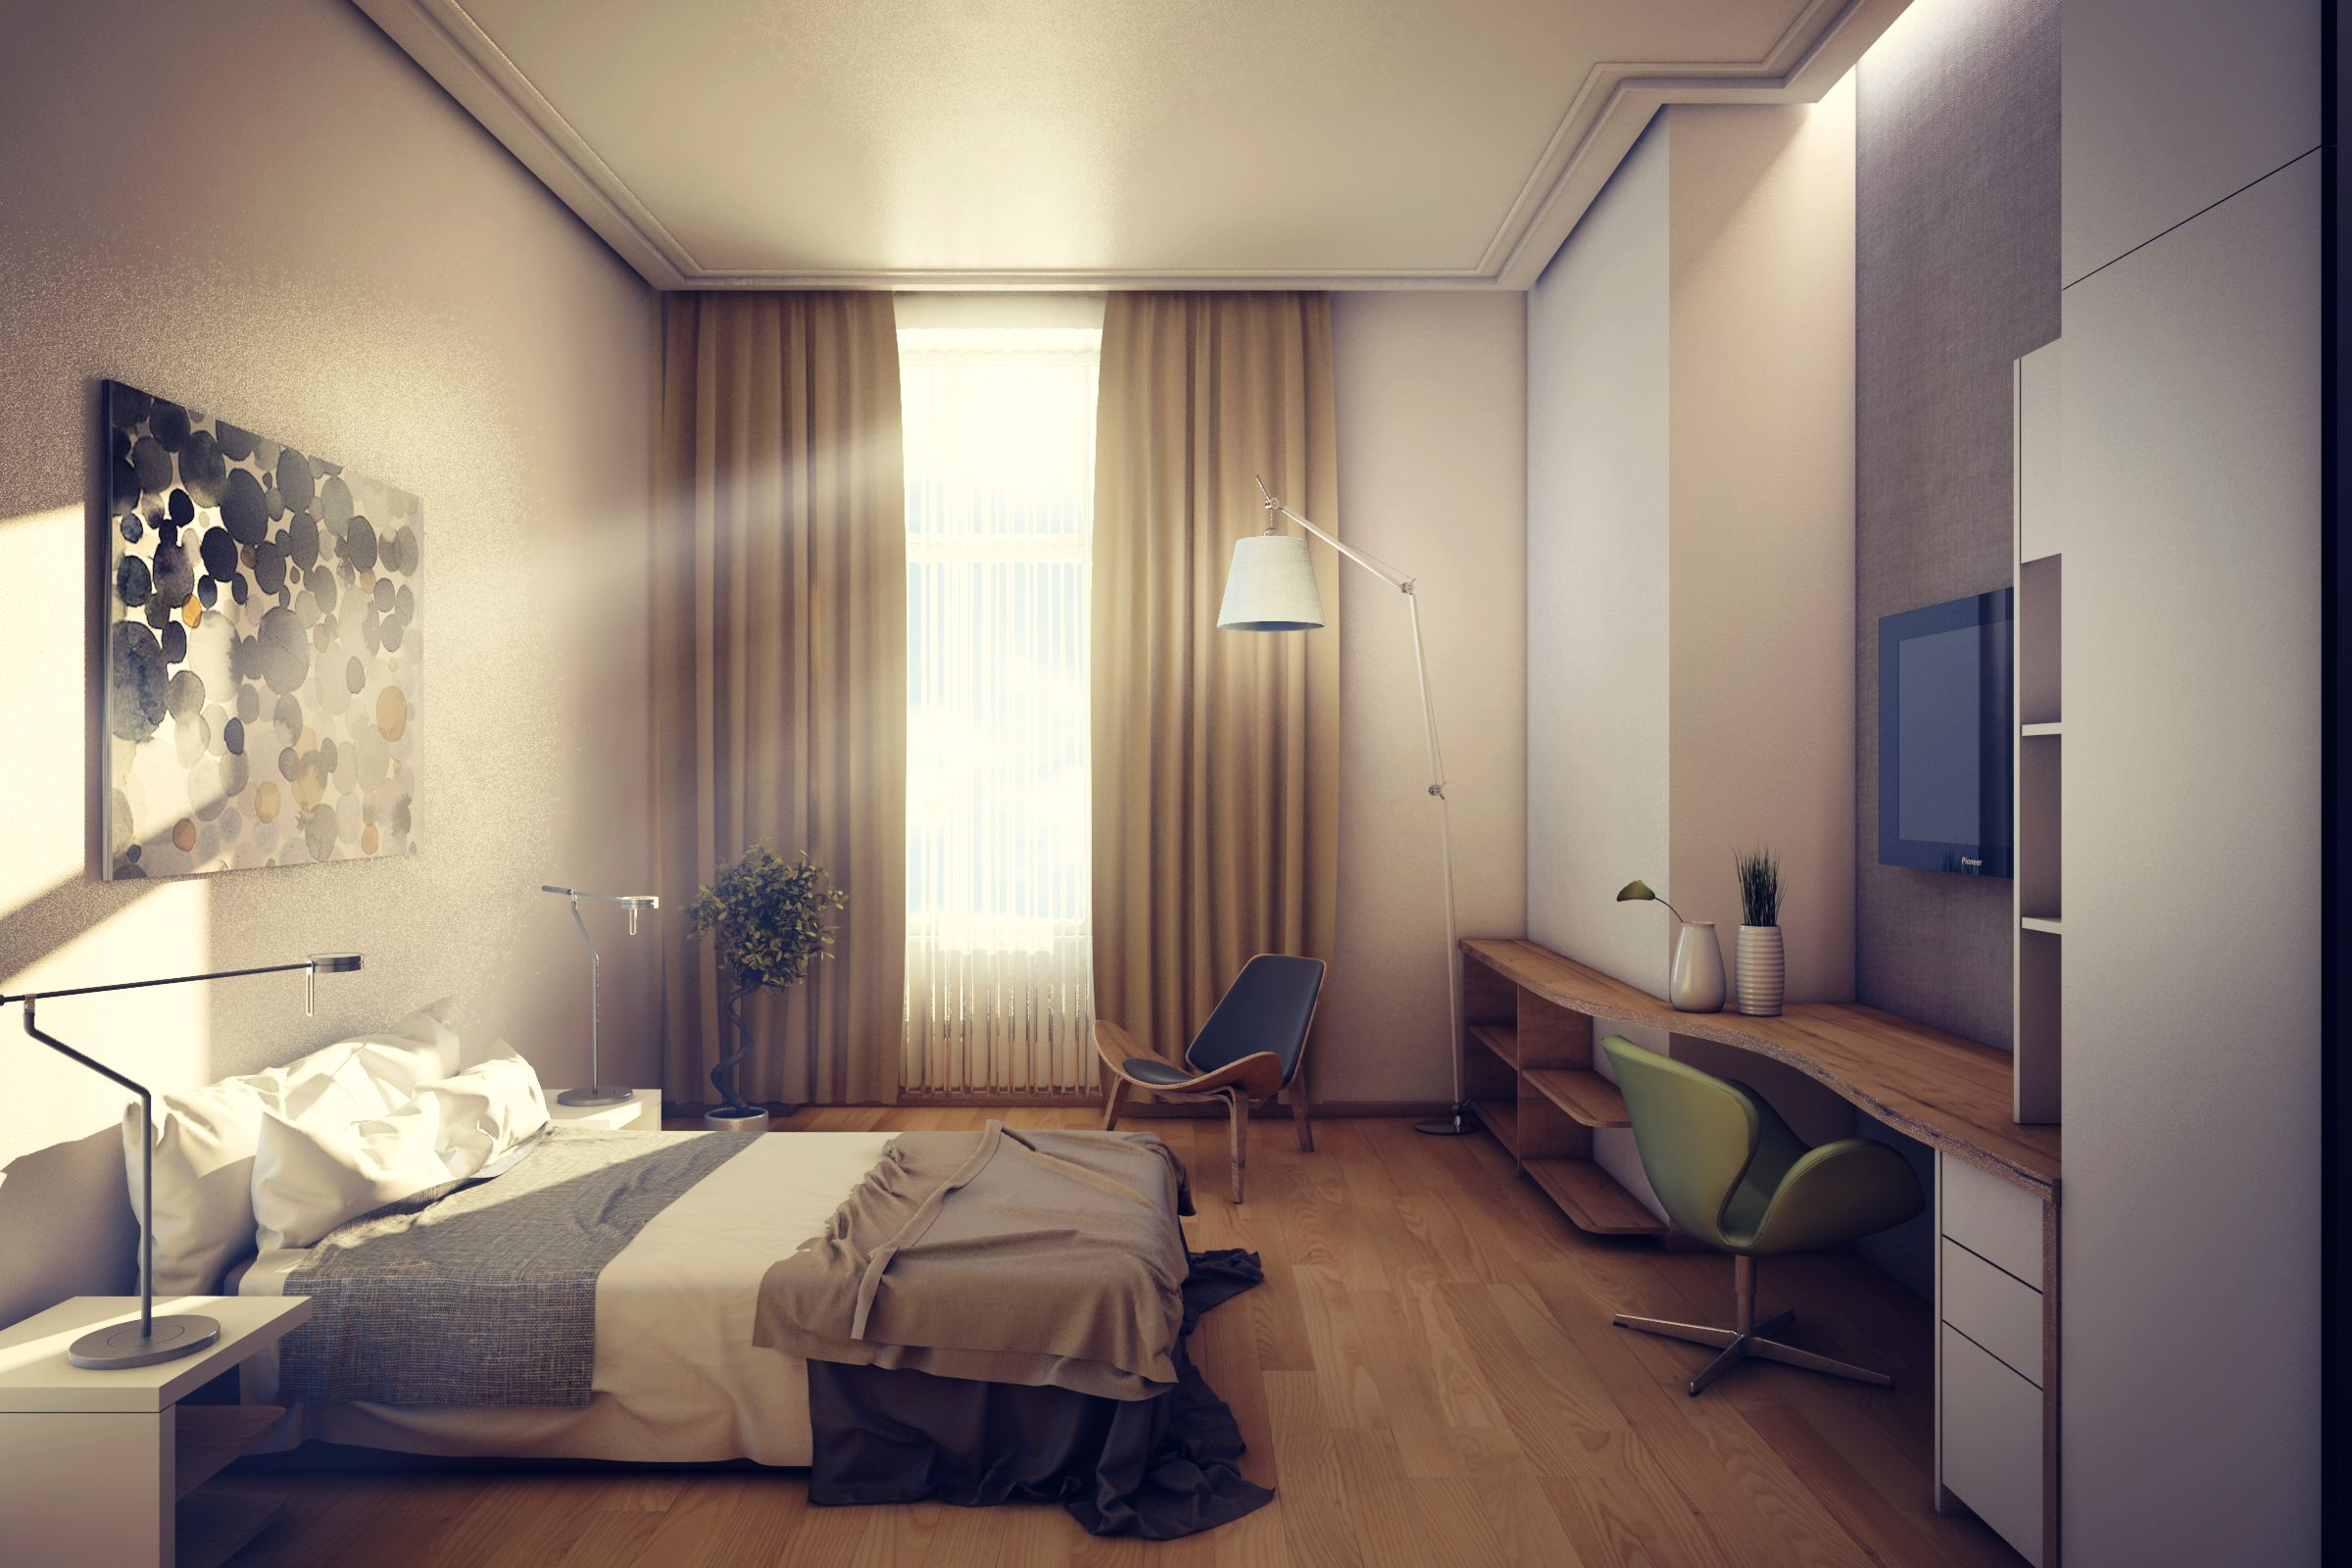 Hotel Room Interior Design D Modelling Rendering And Post - Design my bedroom like a hotel room